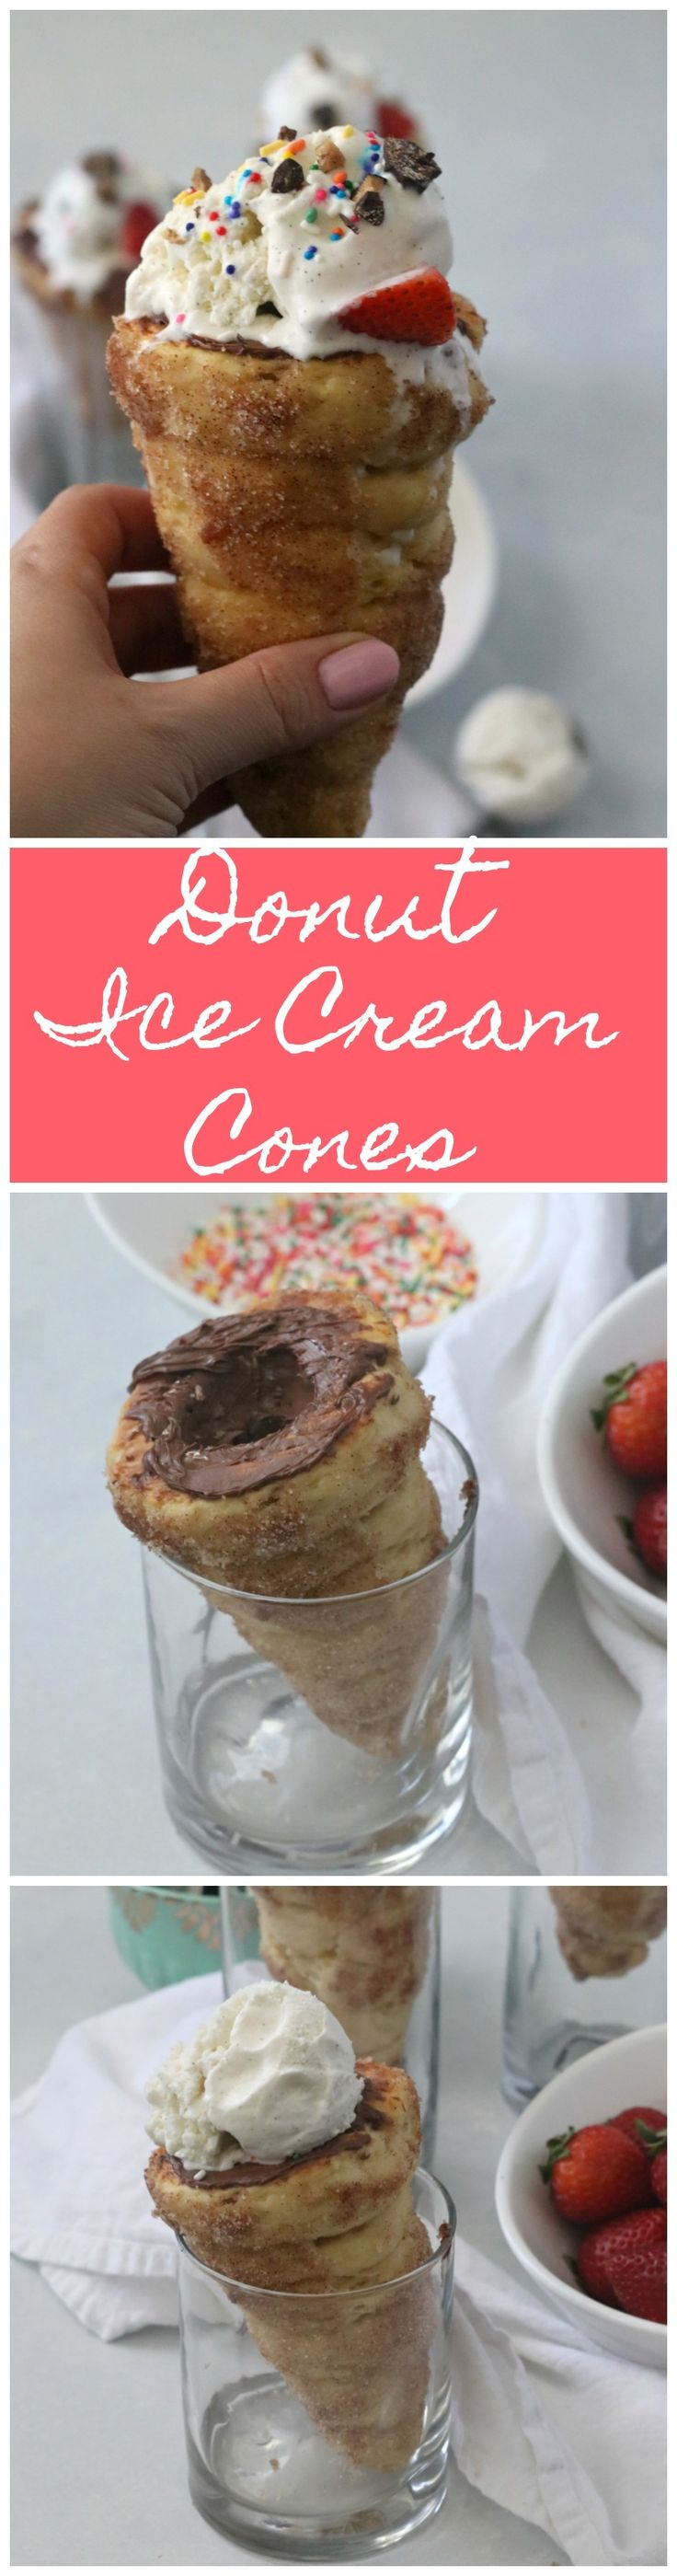 Celebrate summer and your sweet tooth with this delicious donut ice cream cone recipe!